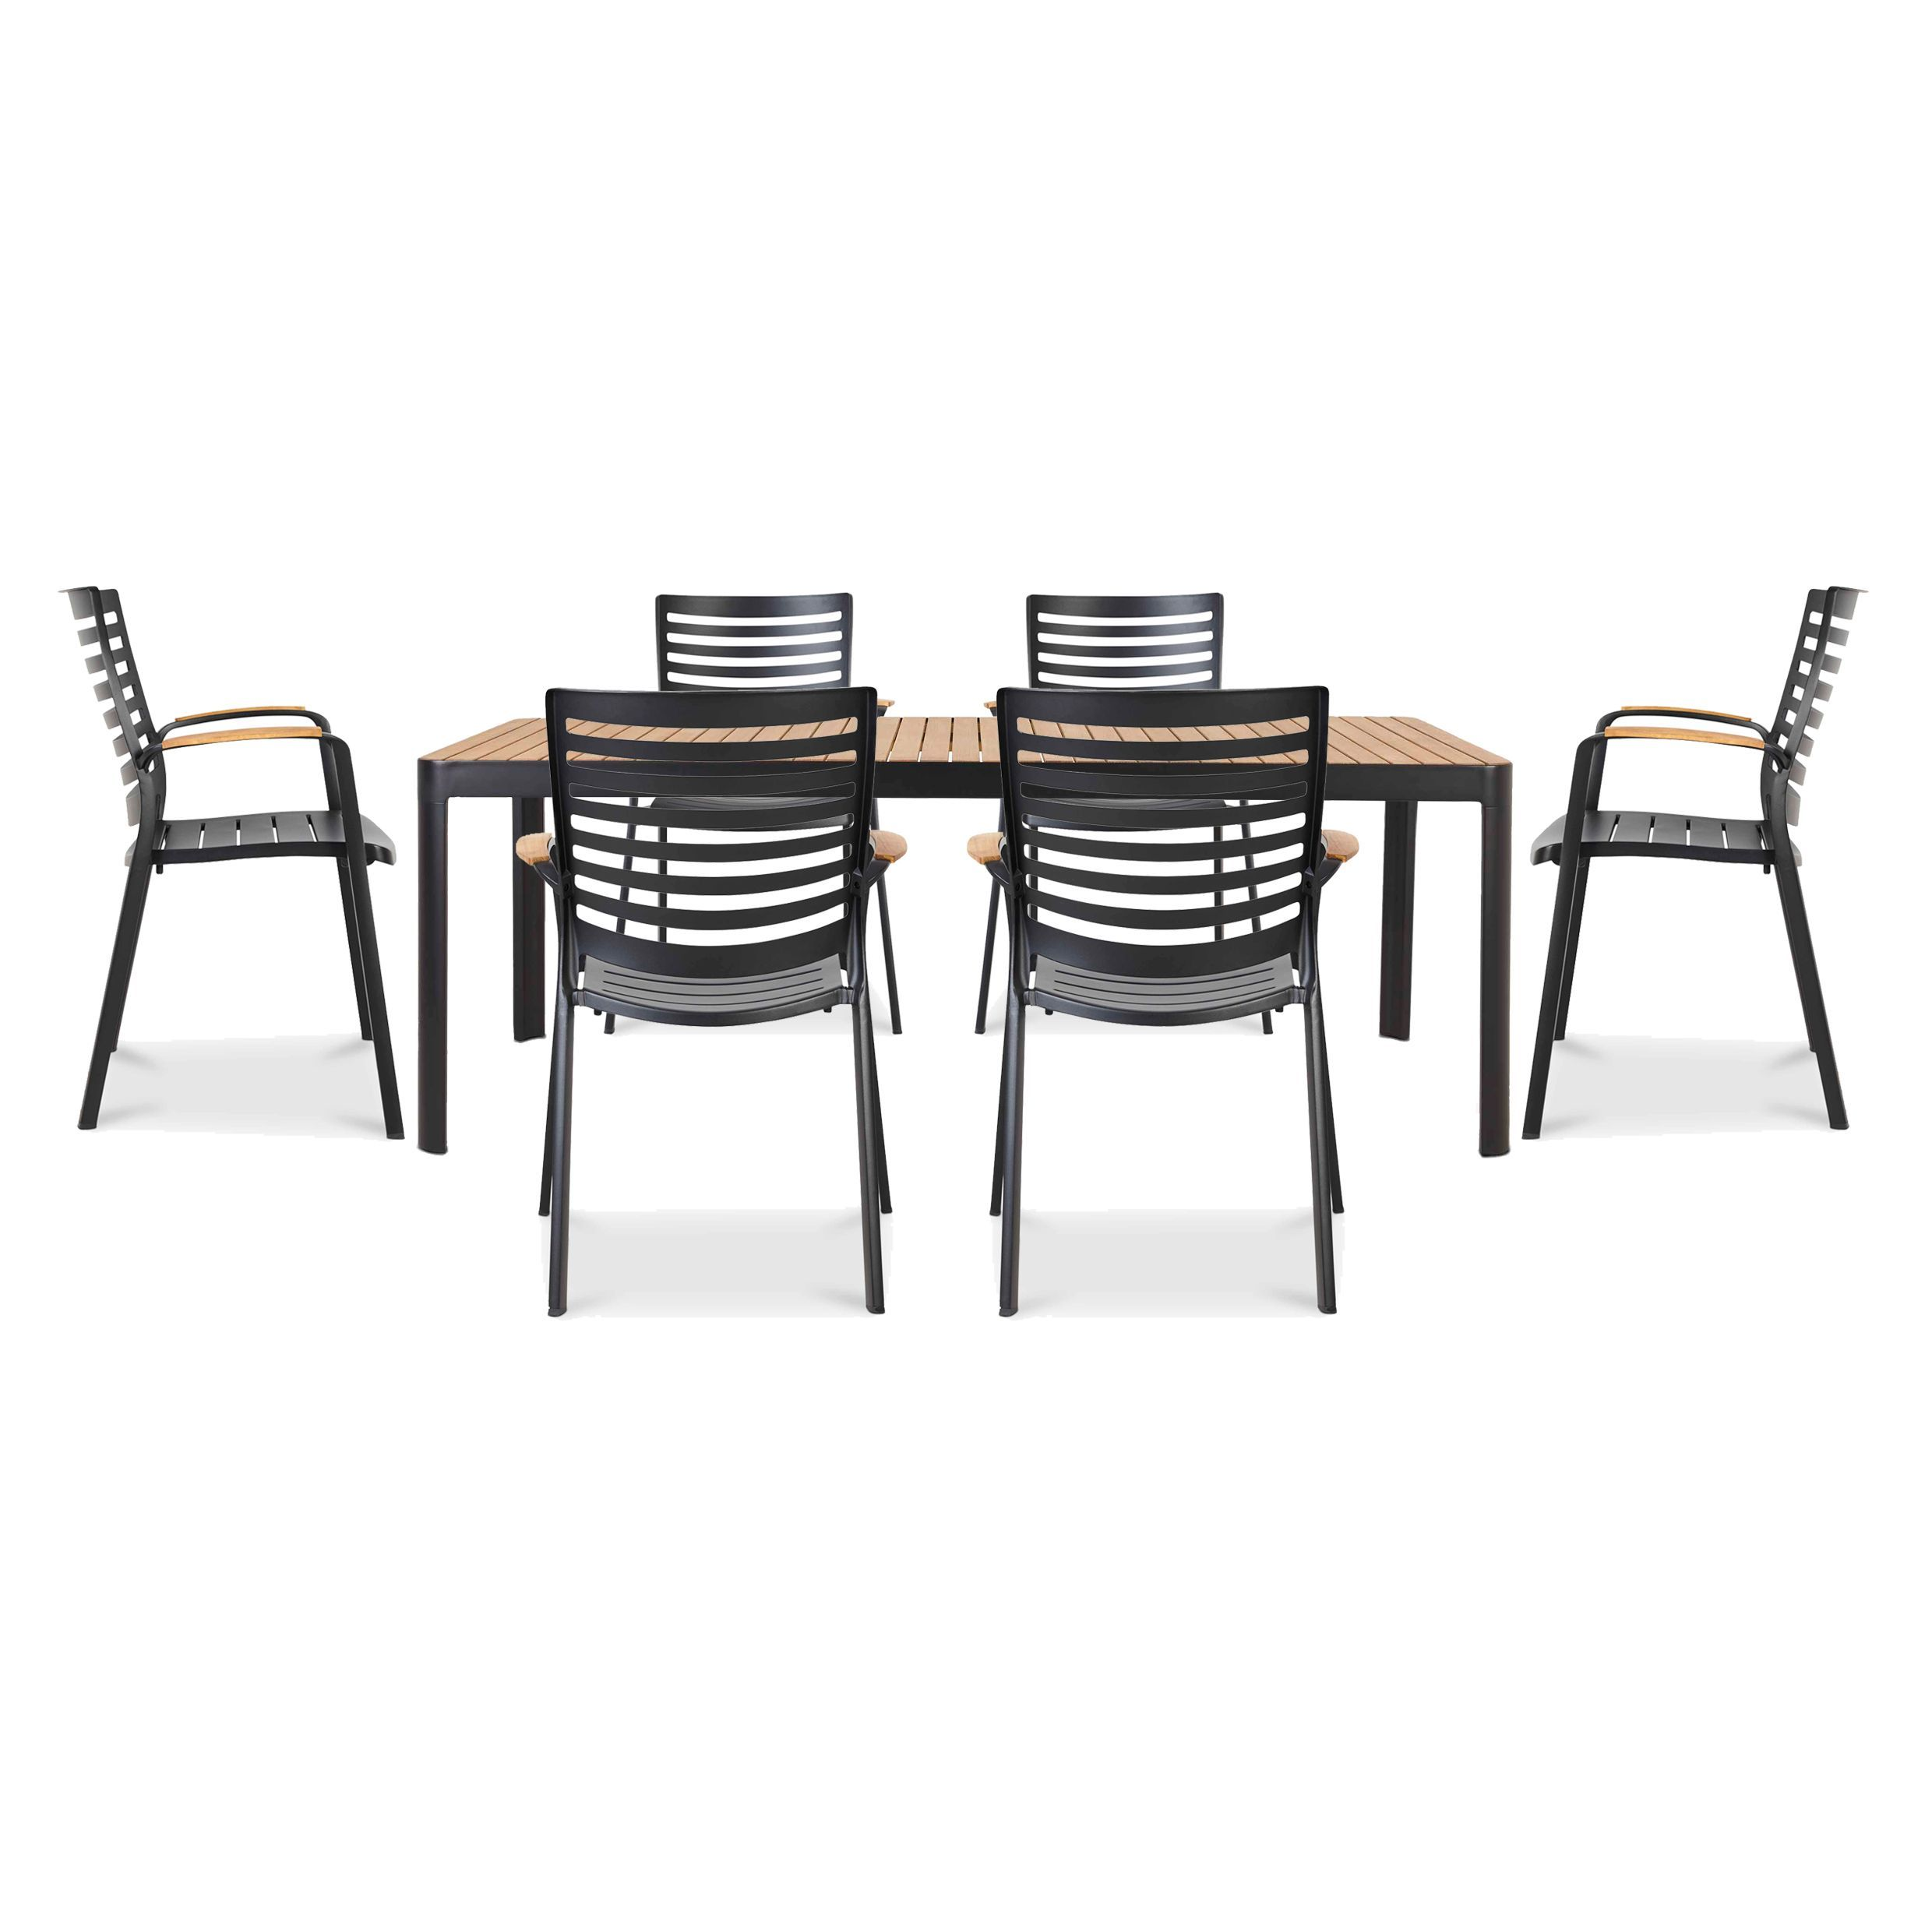 Dining room furniture bq market square saletta